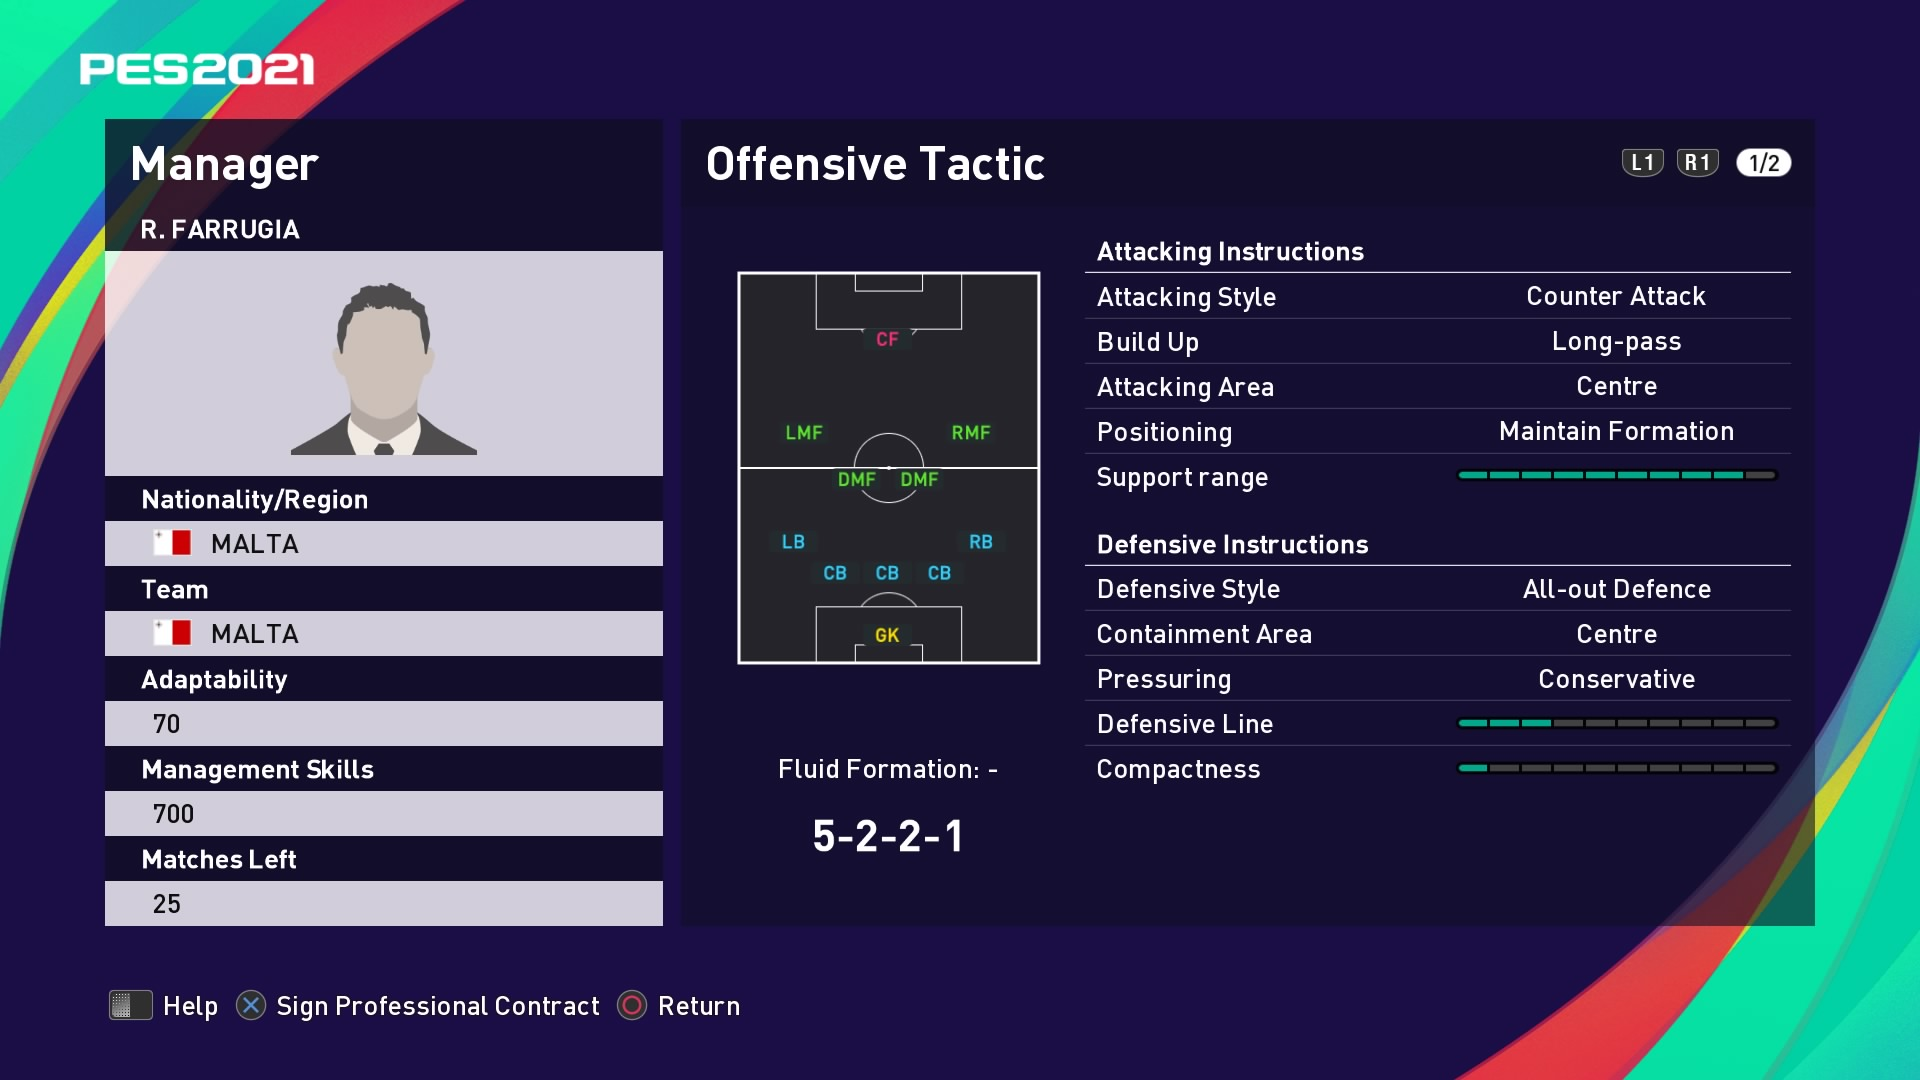 R. Farrugia (Ray Farrugia) Offensive Tactic in PES 2021 myClub